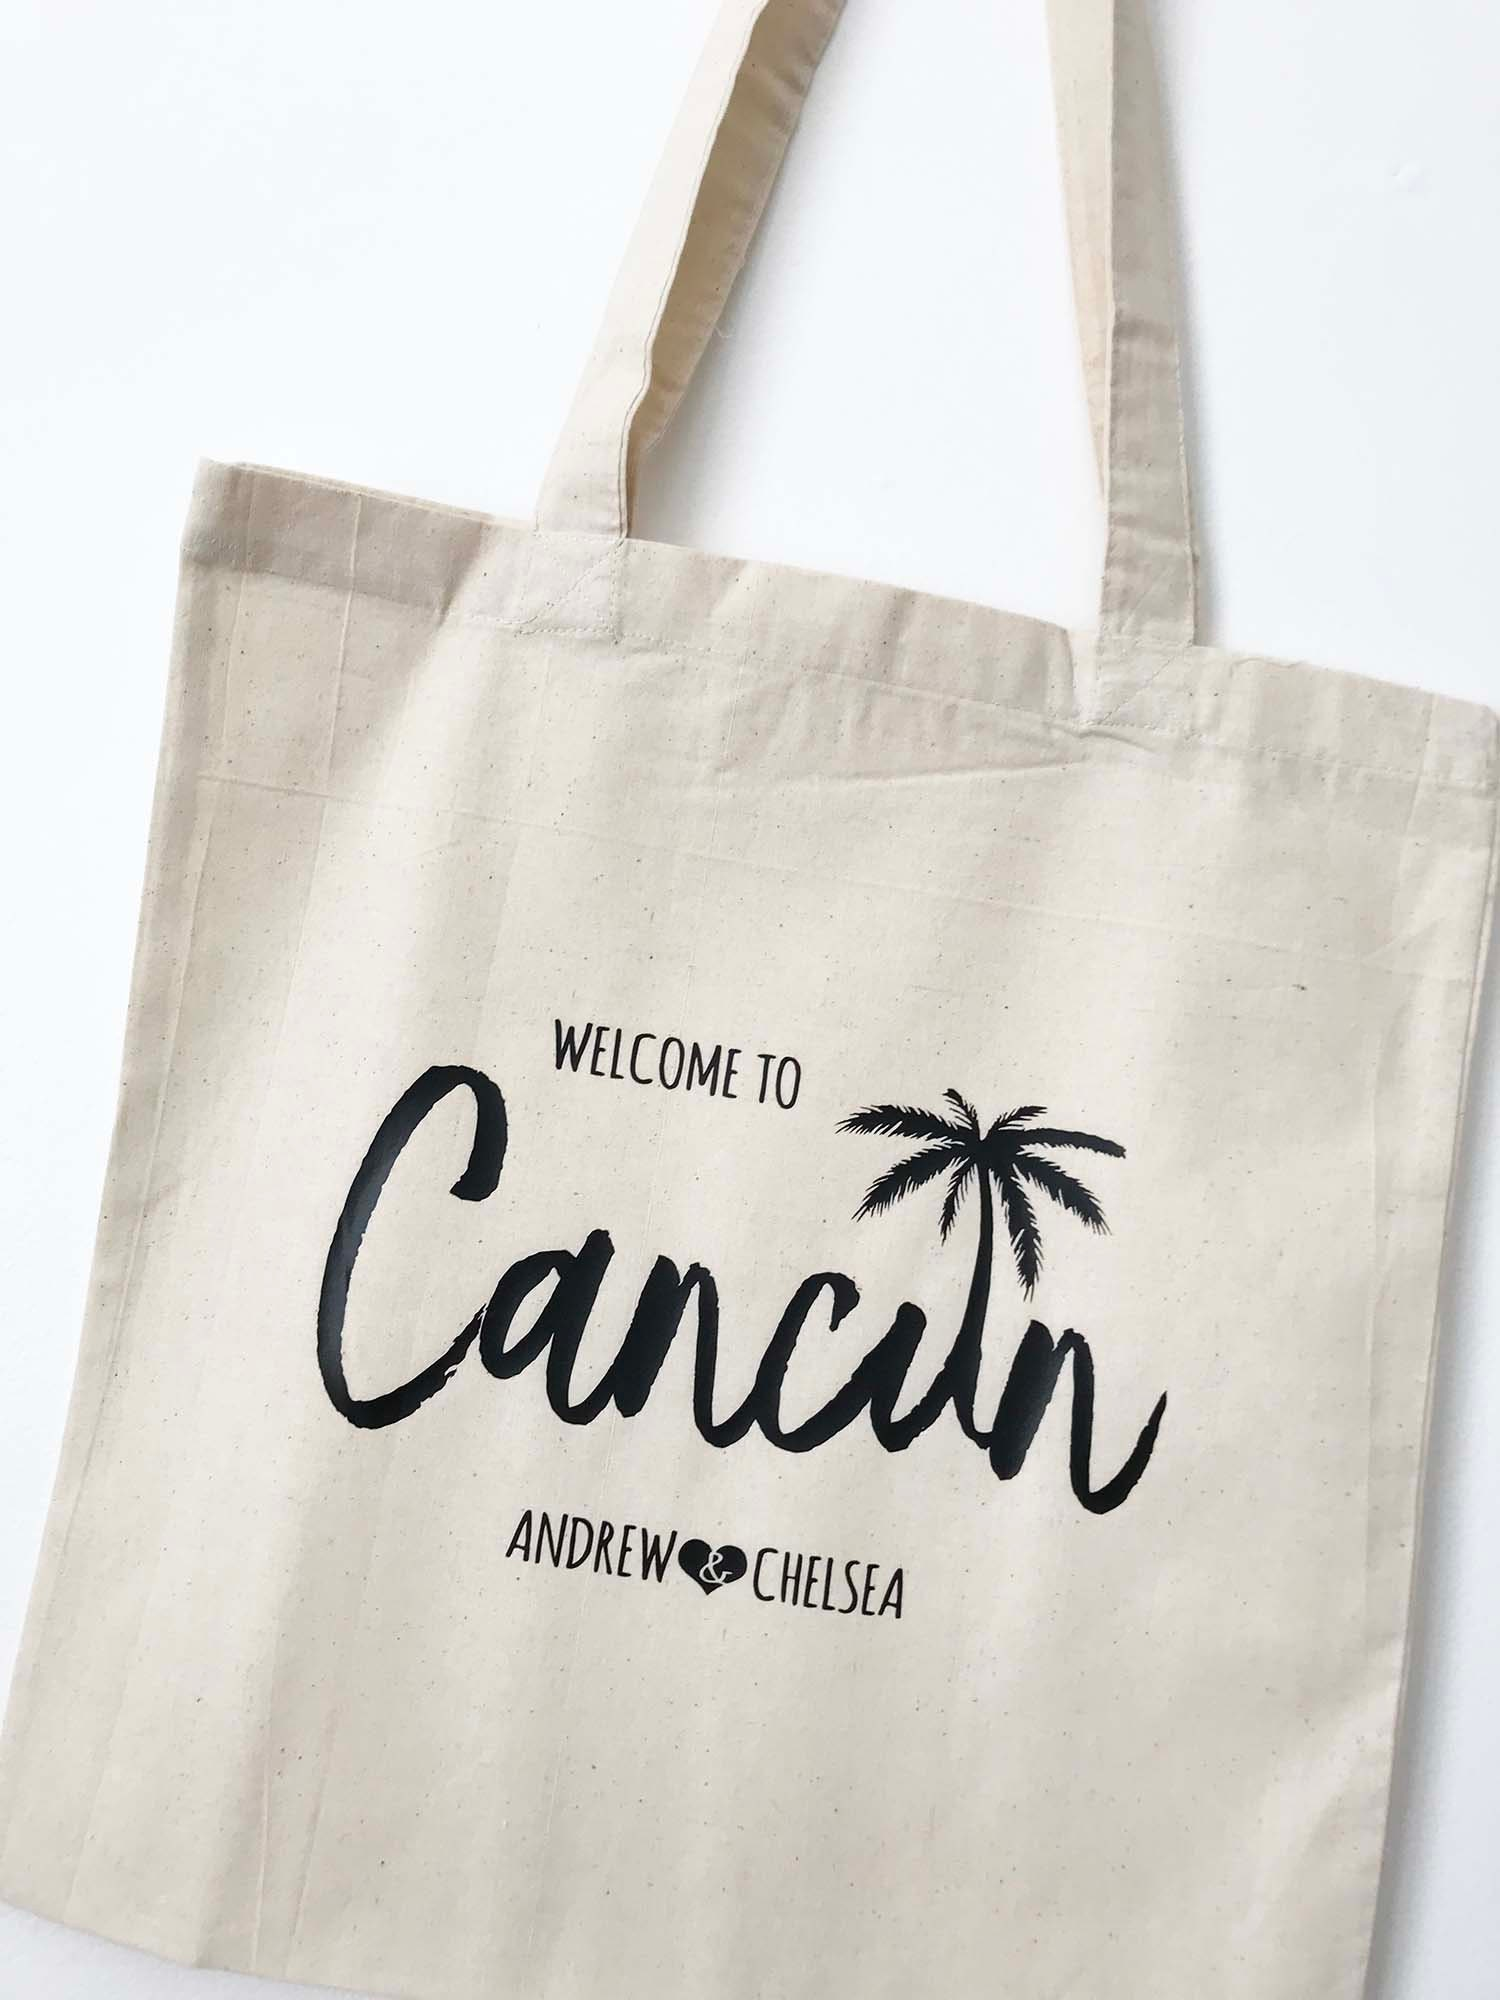 Cancun Tote Bag Destination Wedding personalized tote wedding welcome gift bag